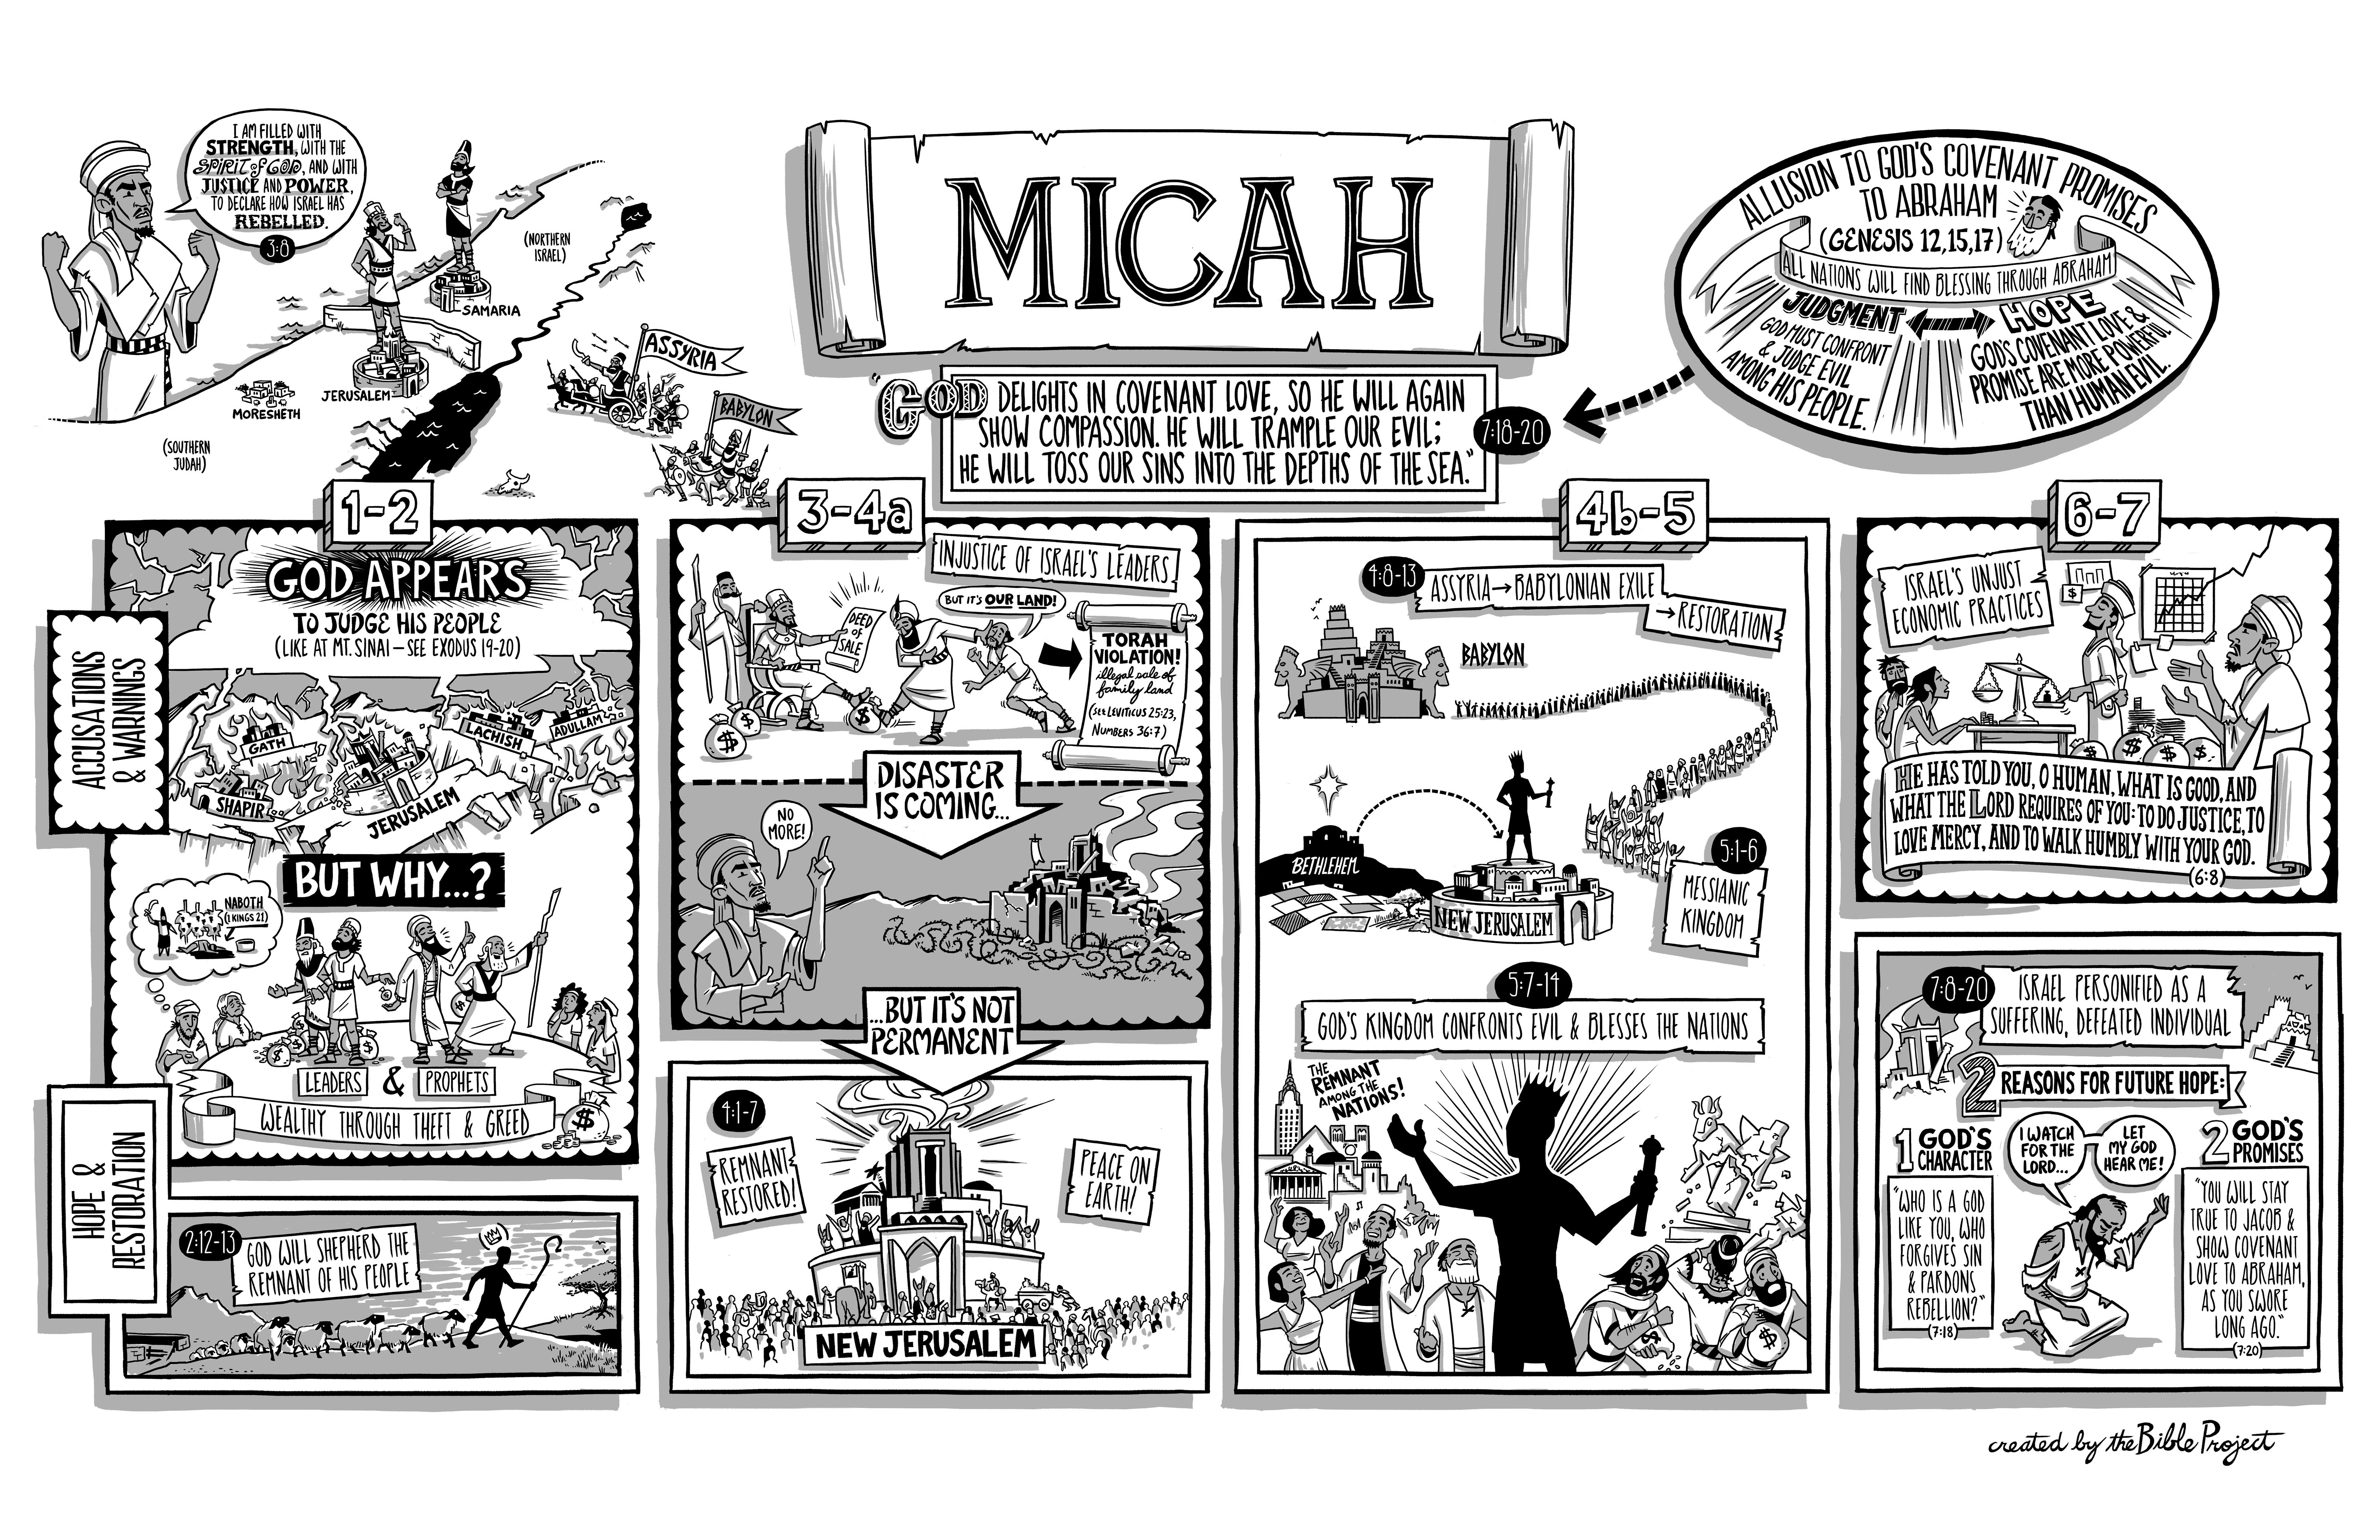 Book of Micah poster illustration